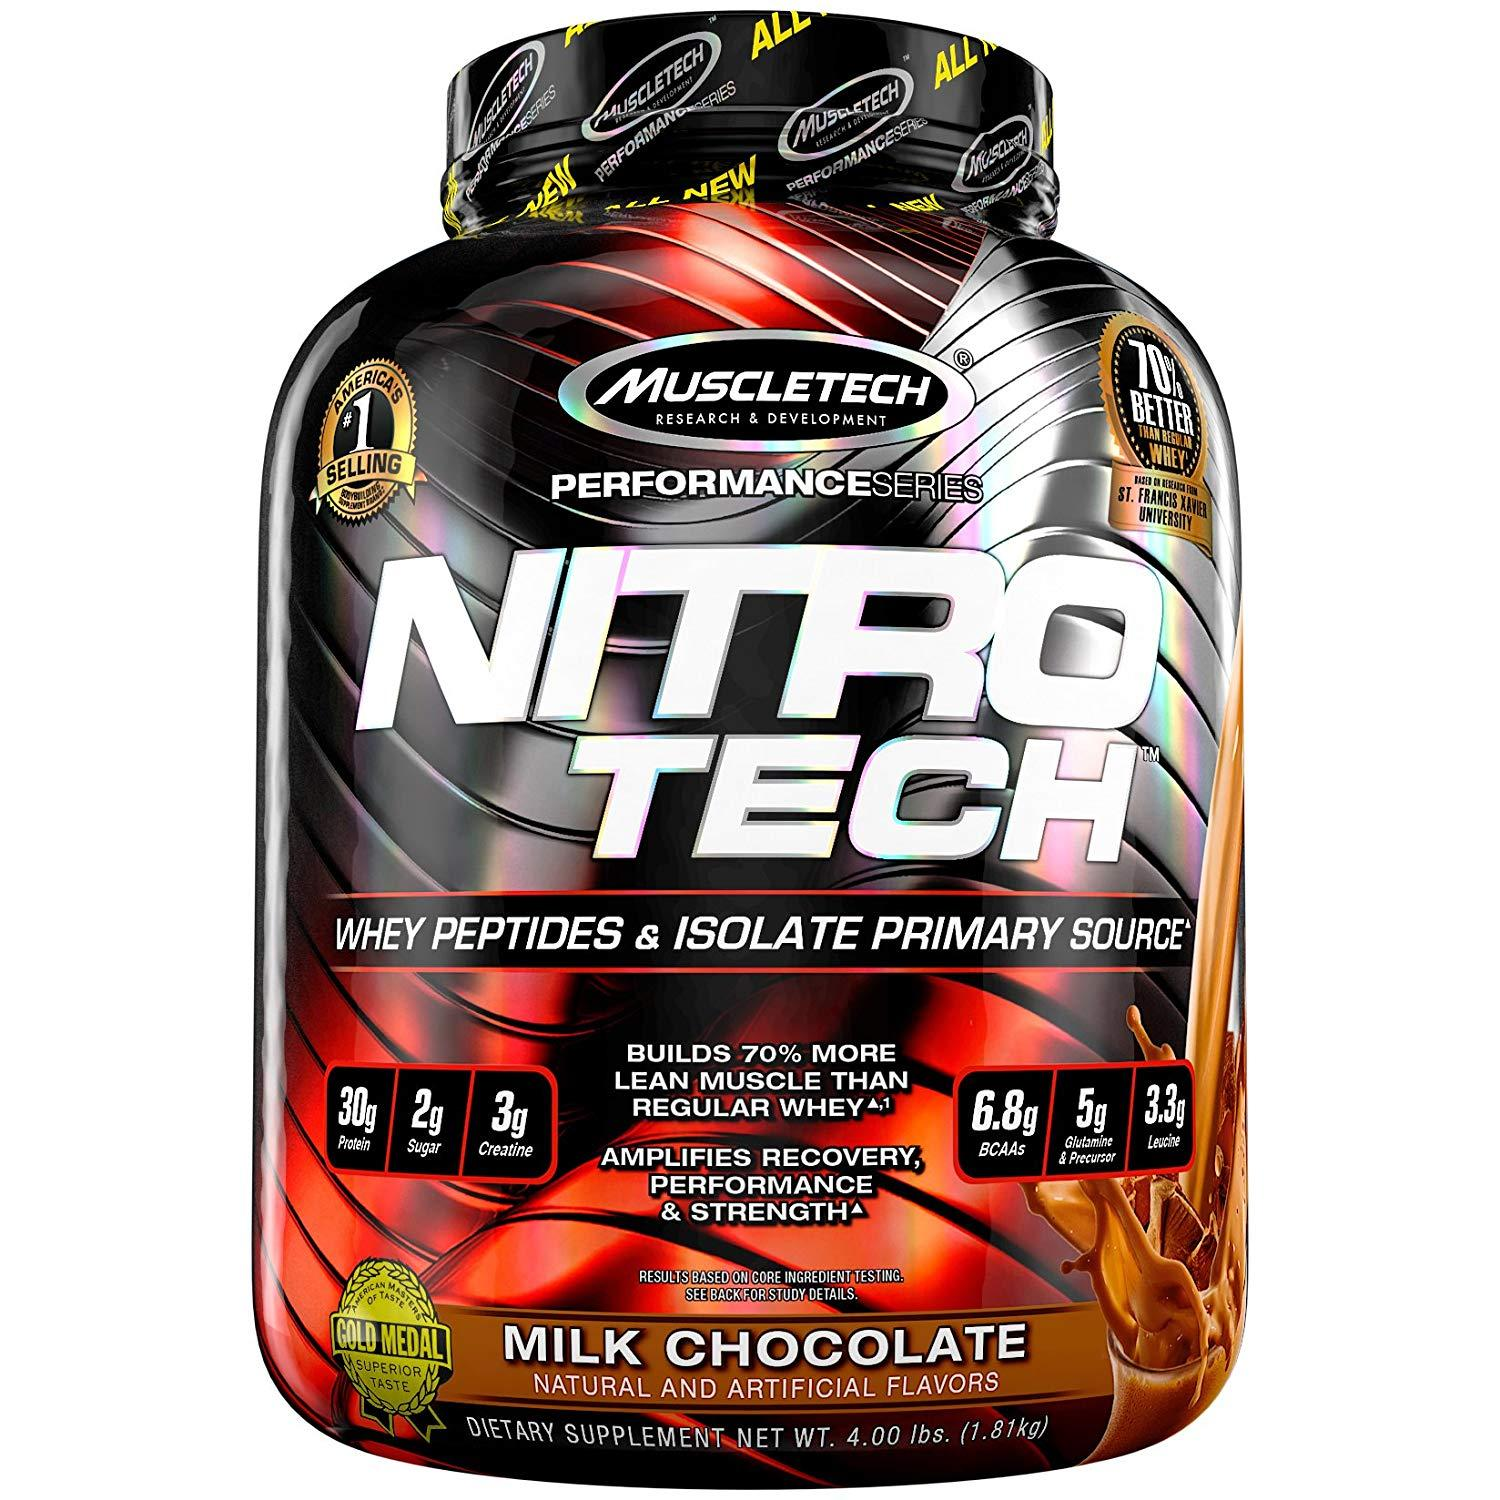 Post Workout Nutrition Food Supplements I Lazada Rsp Creatine Monohydrate 500 Gram Free Delivery 2 3 Days Muscletech Nitro Tech Whey Peptides And Isolate Milk Chocolate 4